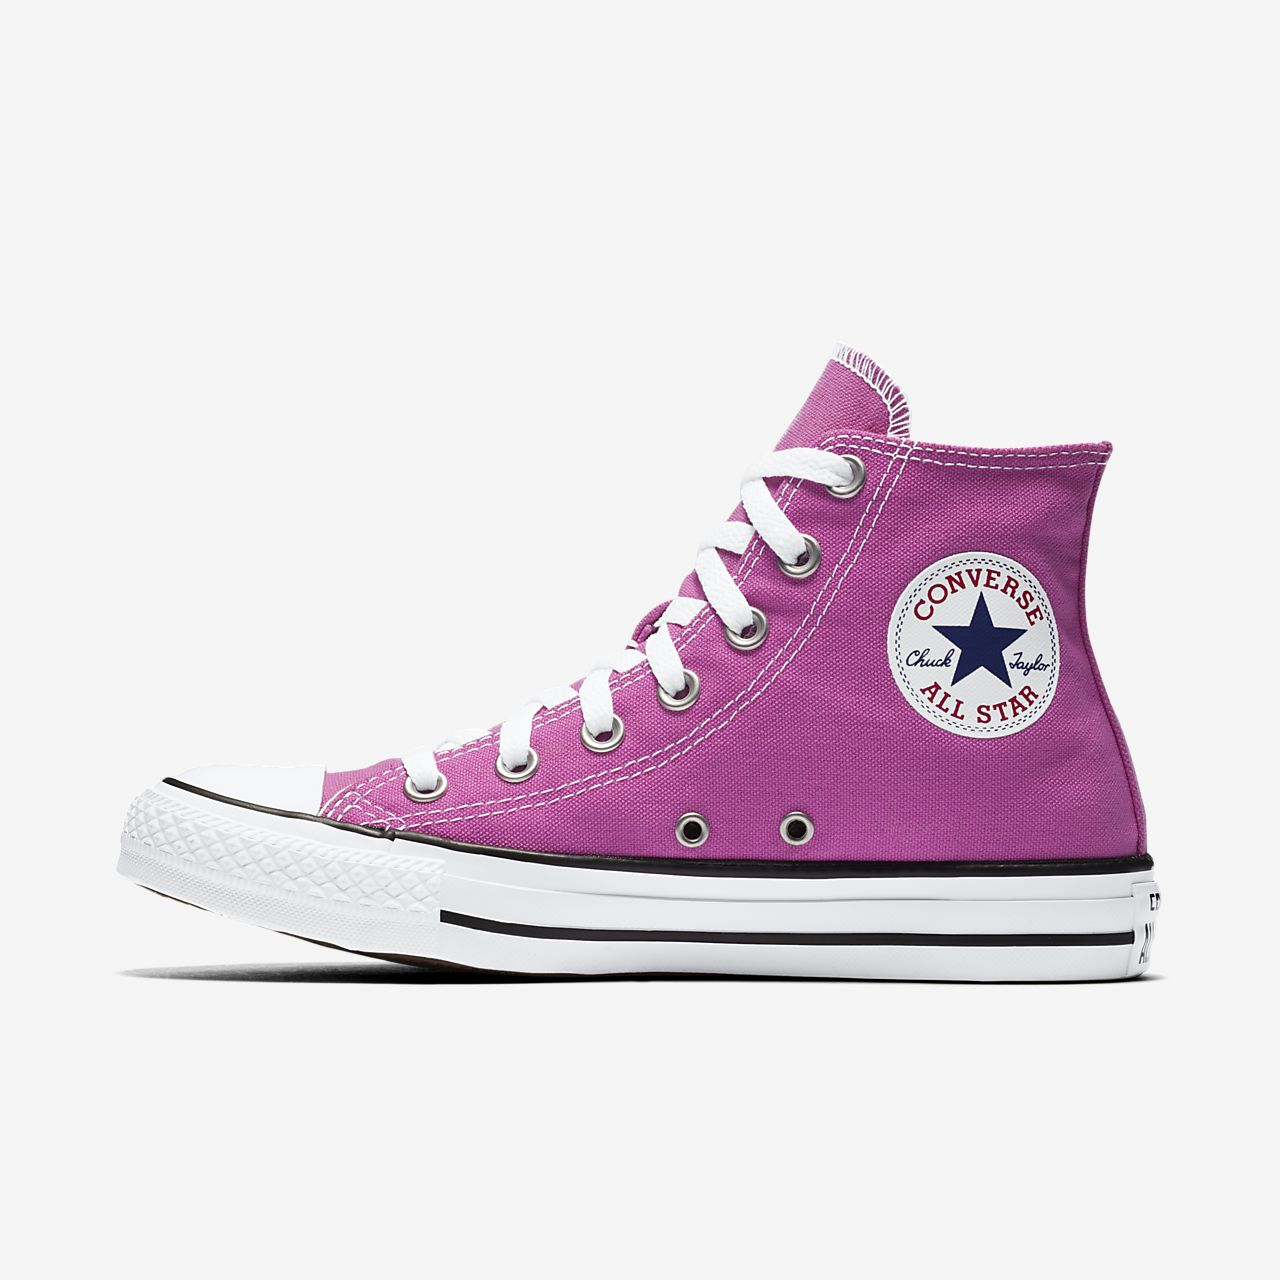 7534a5afe4374 Converse Chuck Taylor All Star Seasonal High Top Unisex Shoe. Nike.com